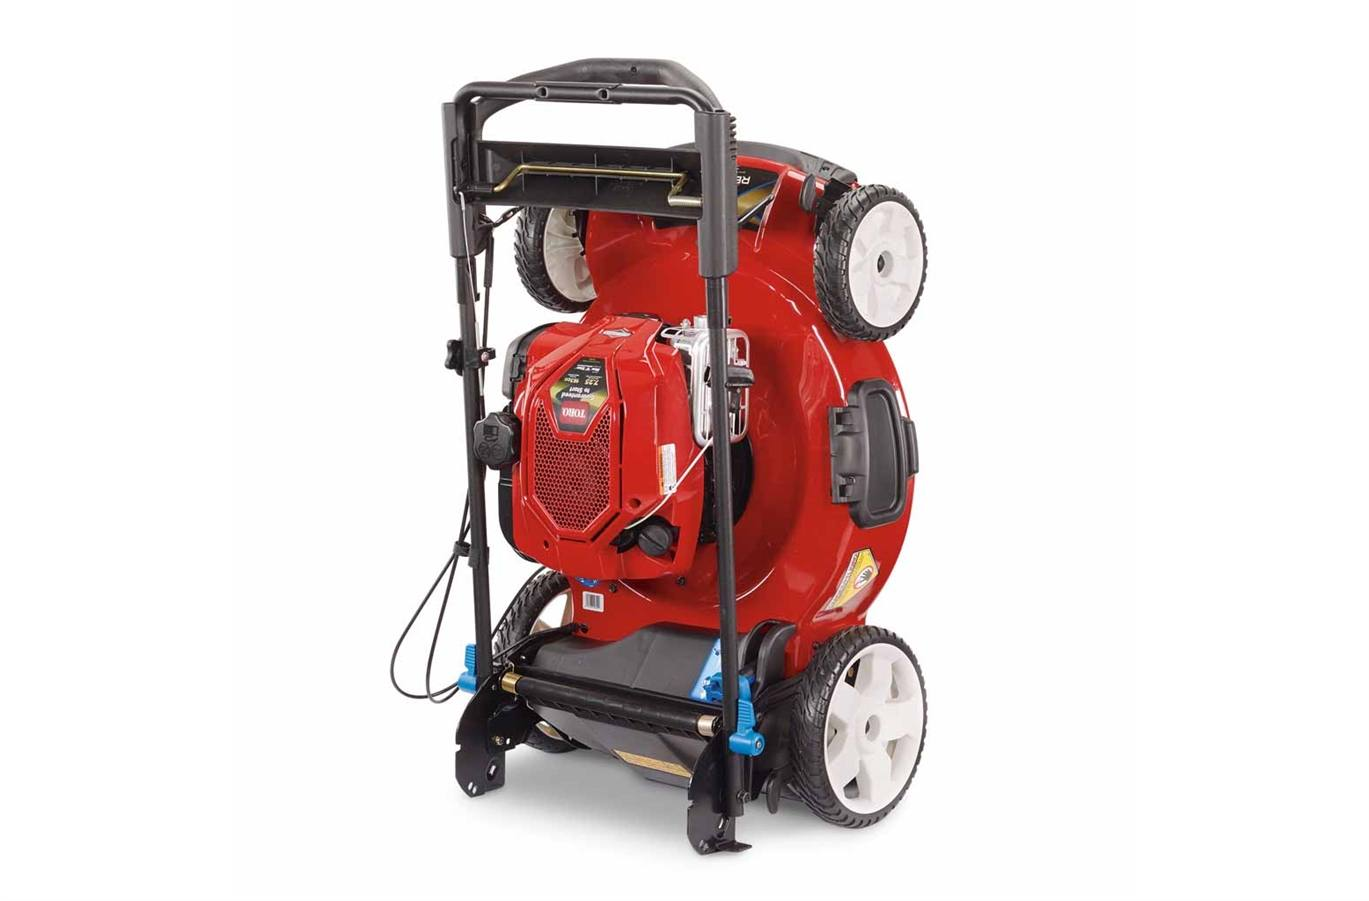 2019 Briggs & Stratton Mow N' Stow® Series 6 25 ft-lbs Gross